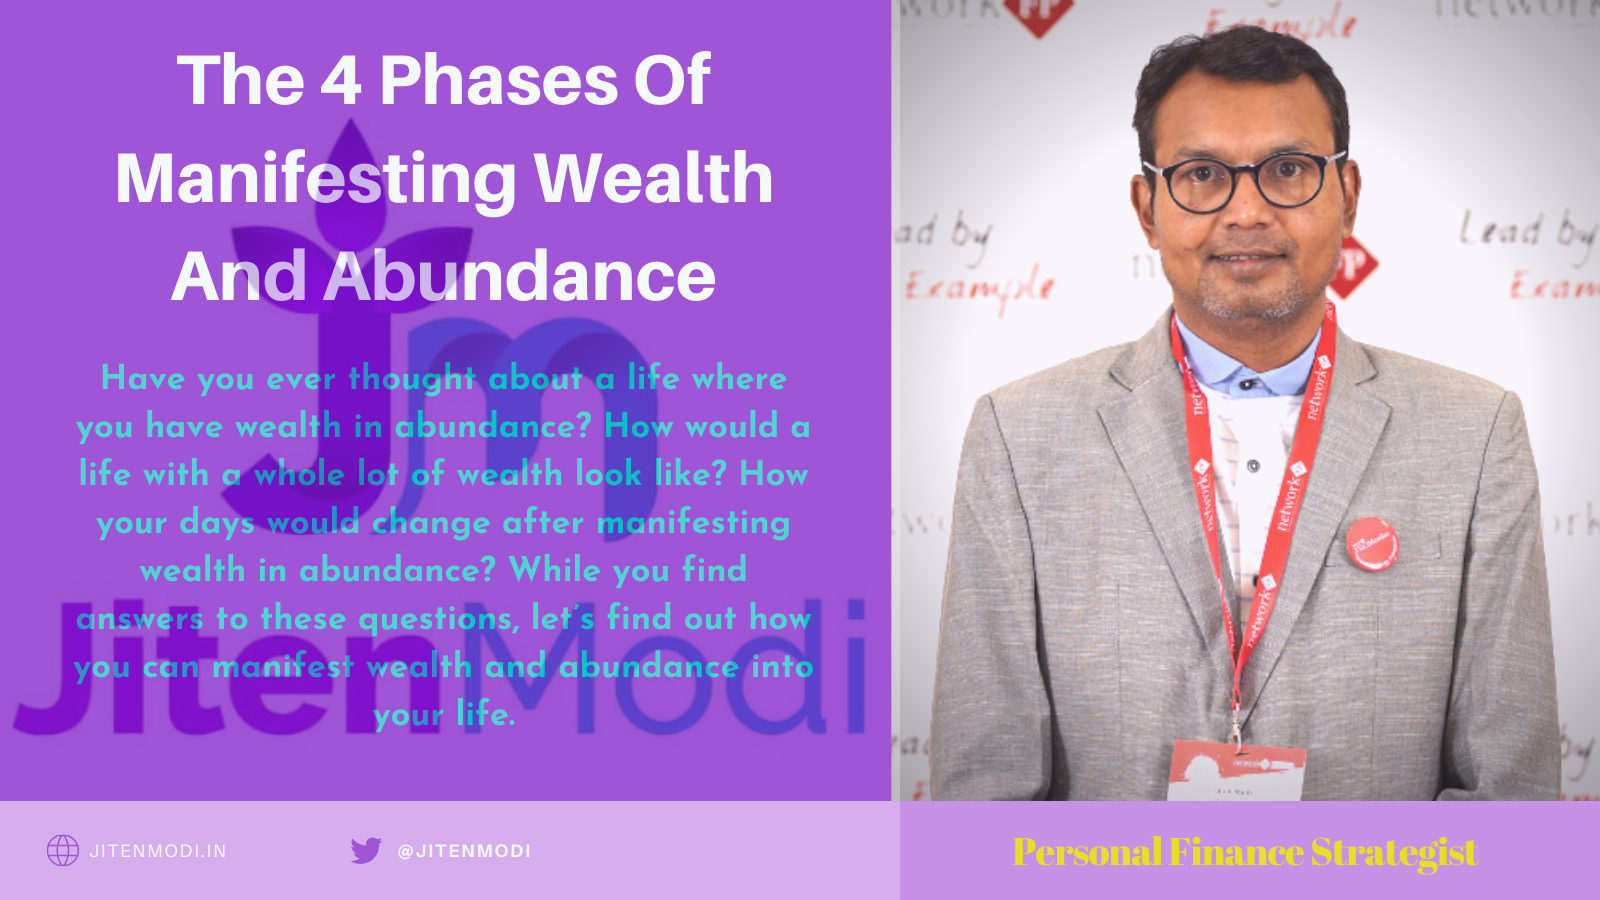 The 4 Phases Of Manifesting Wealth And Abundance